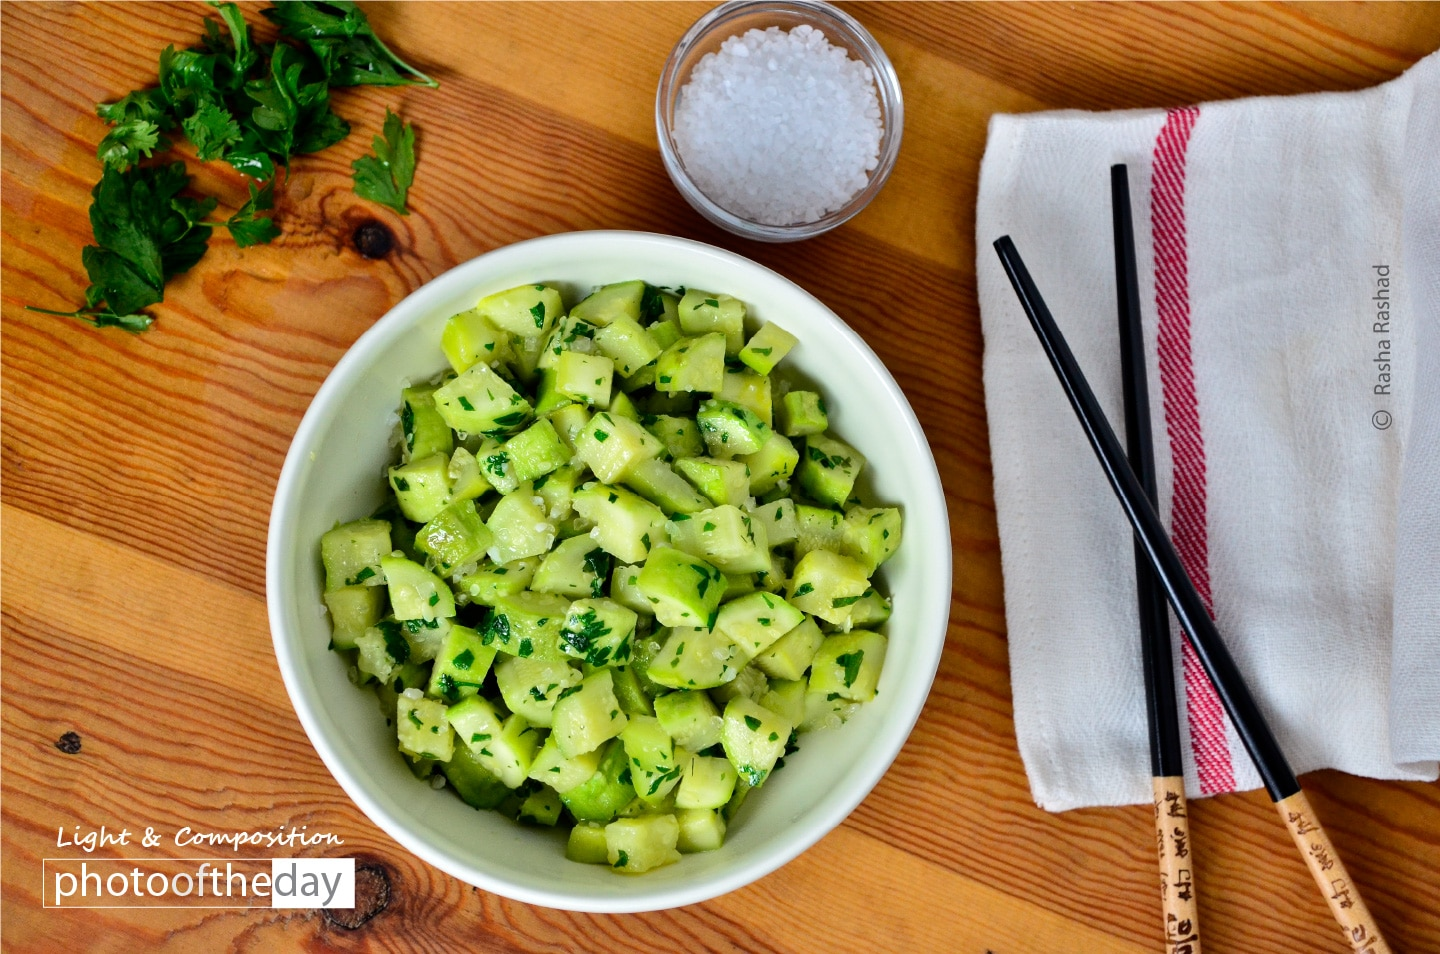 Glazed Zucchini for a Snack, by Rasha Rashad